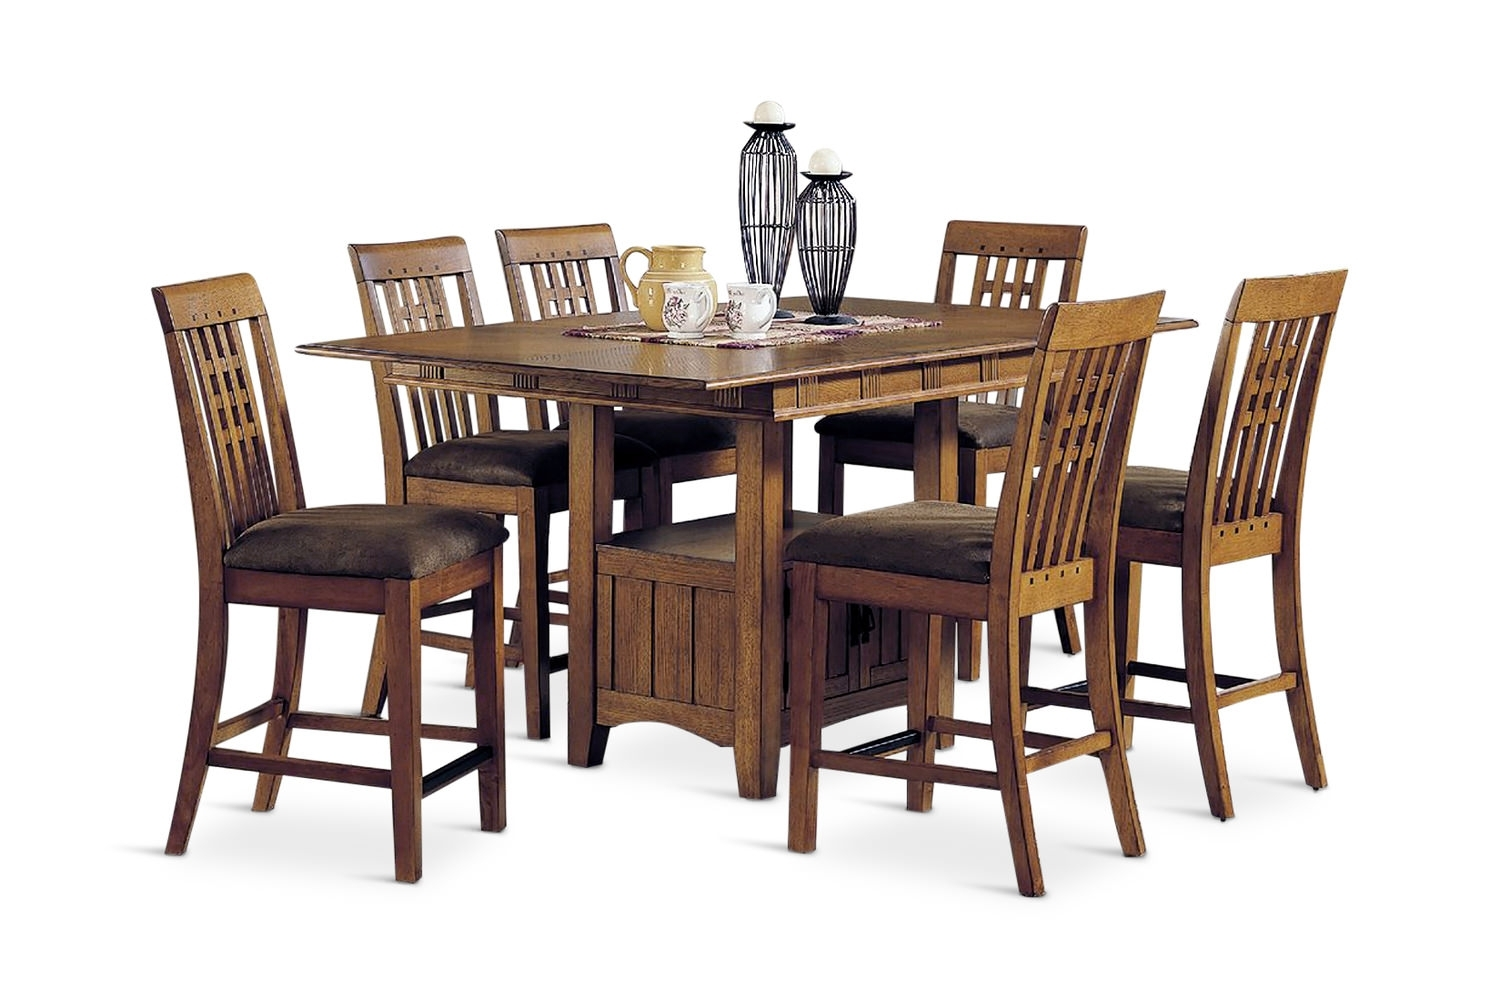 Dining Sets – Kitchen & Dining Room Sets – Hom Furniture Inside 2017 Chapleau Ii 7 Piece Extension Dining Tables With Side Chairs (Image 8 of 20)